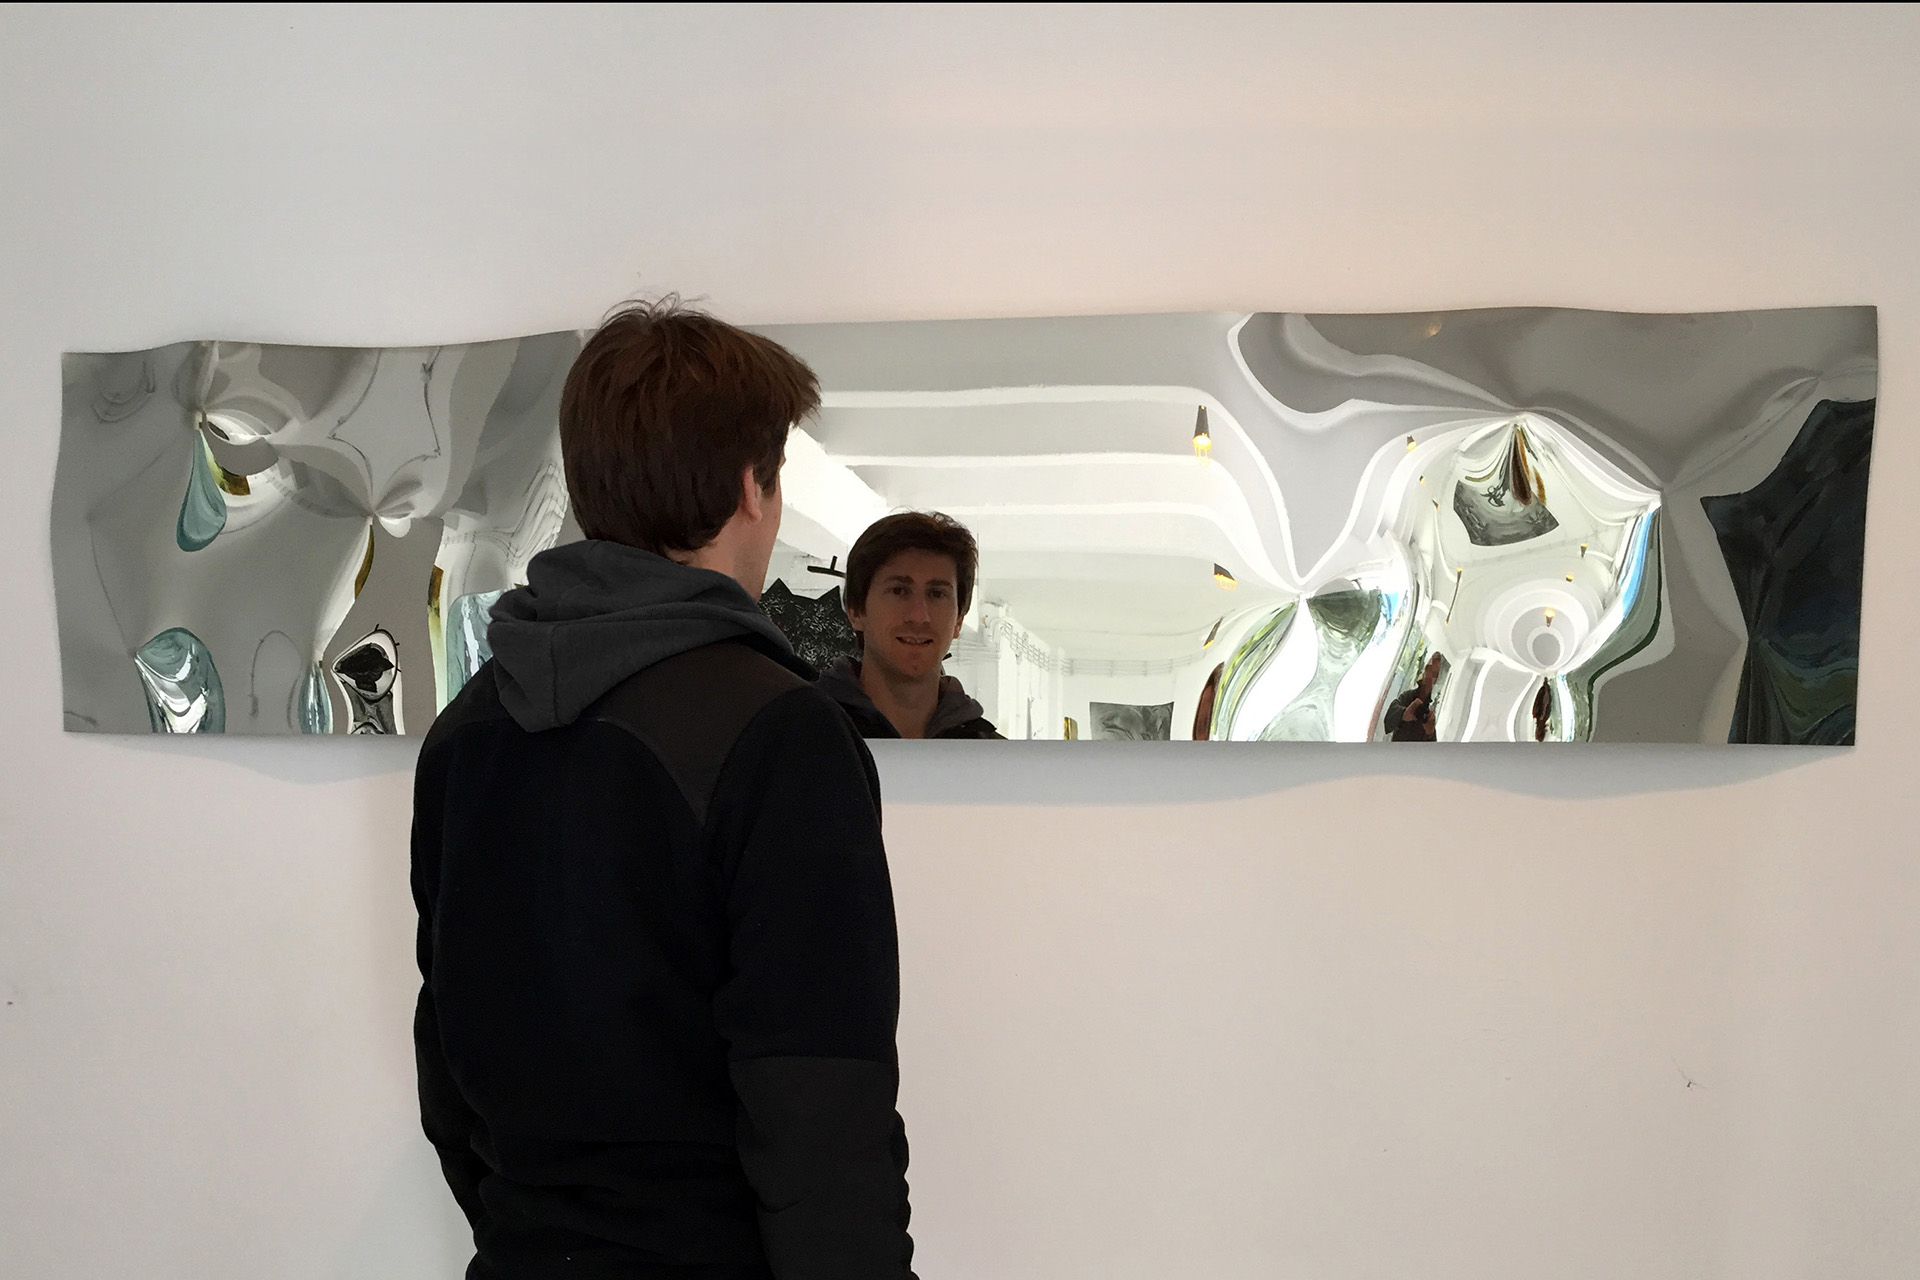 Lustro mirrOrnament by ARCHIGLASS Konrad Urbanowicz | Mirror mirrOrnament 50 x 225 cm